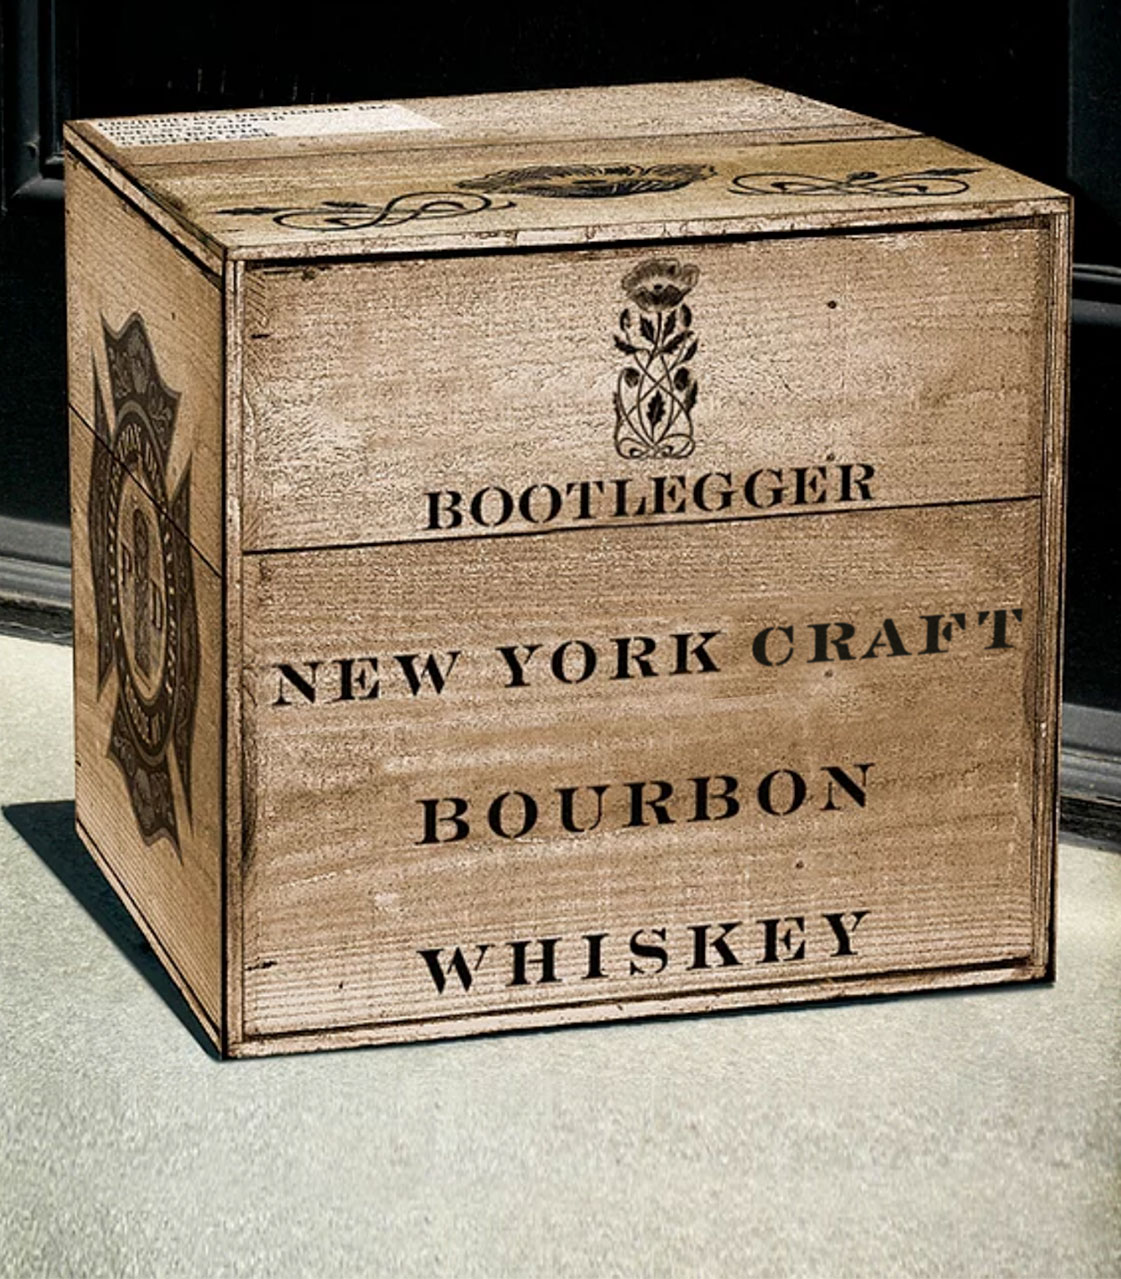 Bootlegger New York Craft Bourbon